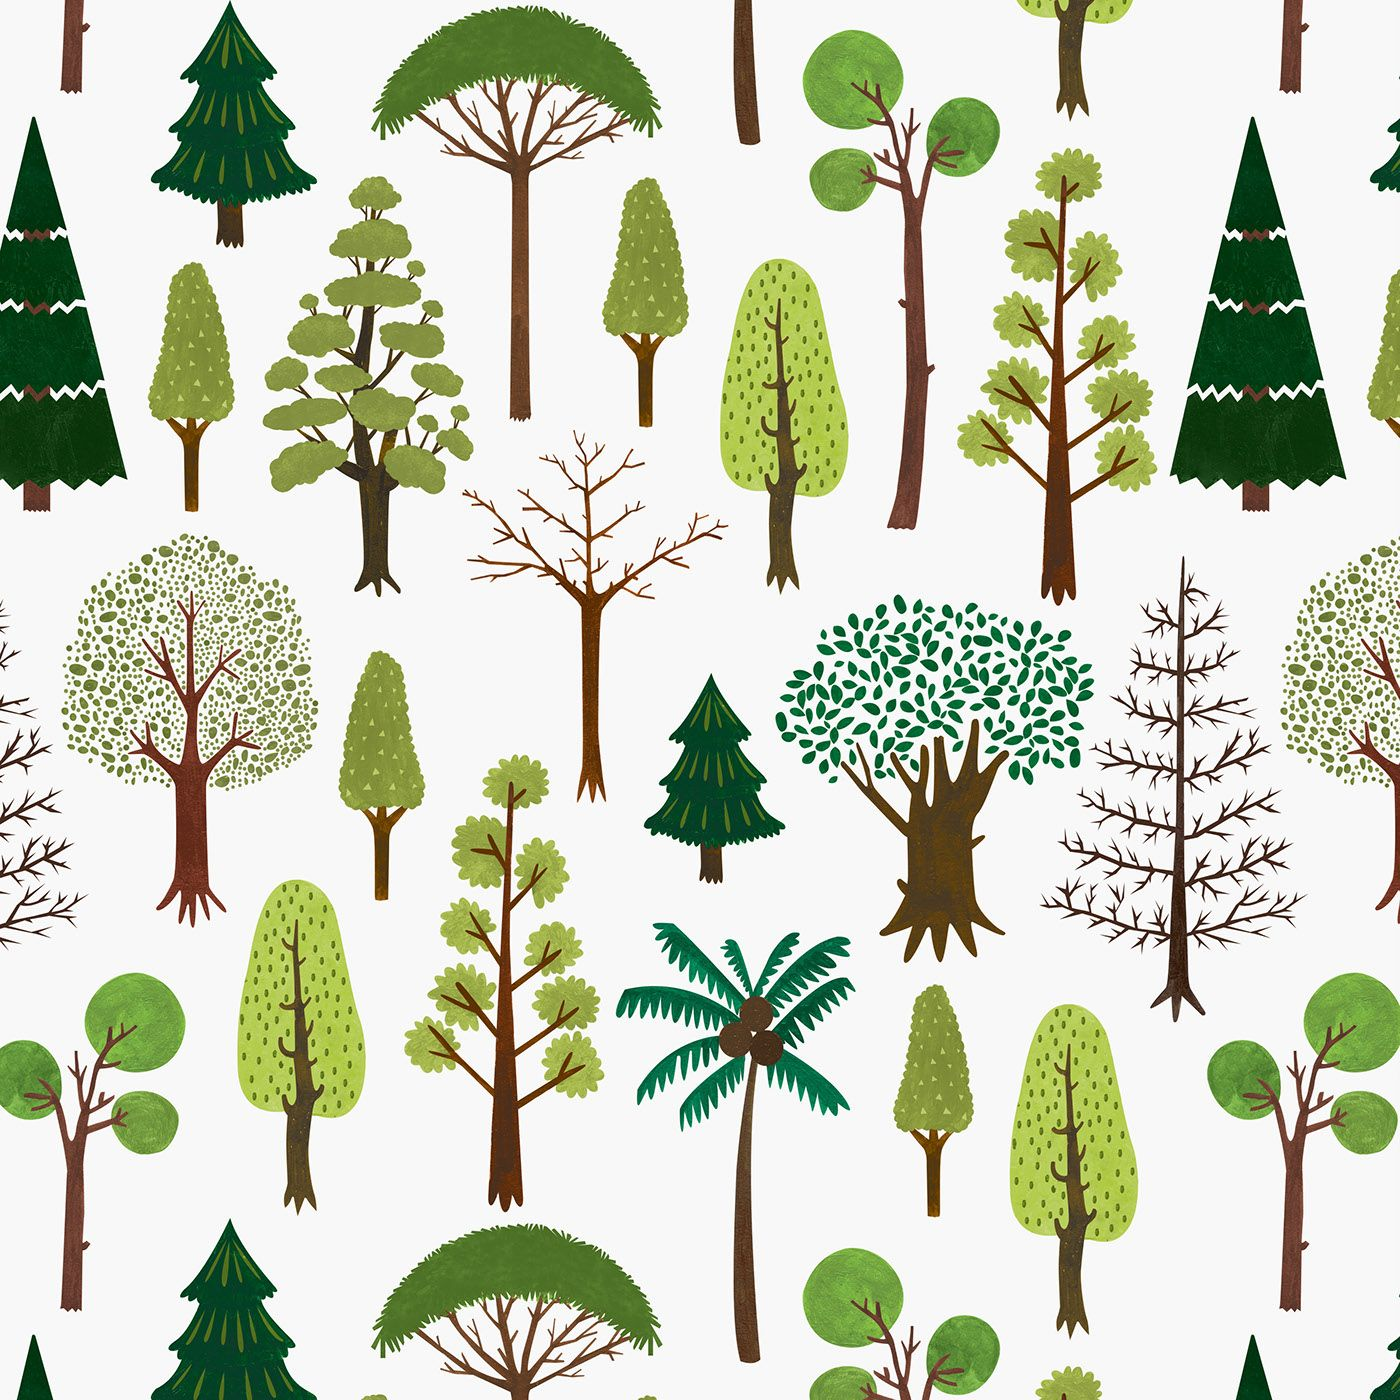 Watercolor bren tree clipart clip royalty free Four Seasons Trees illustration for fabric pattern. All ... clip royalty free